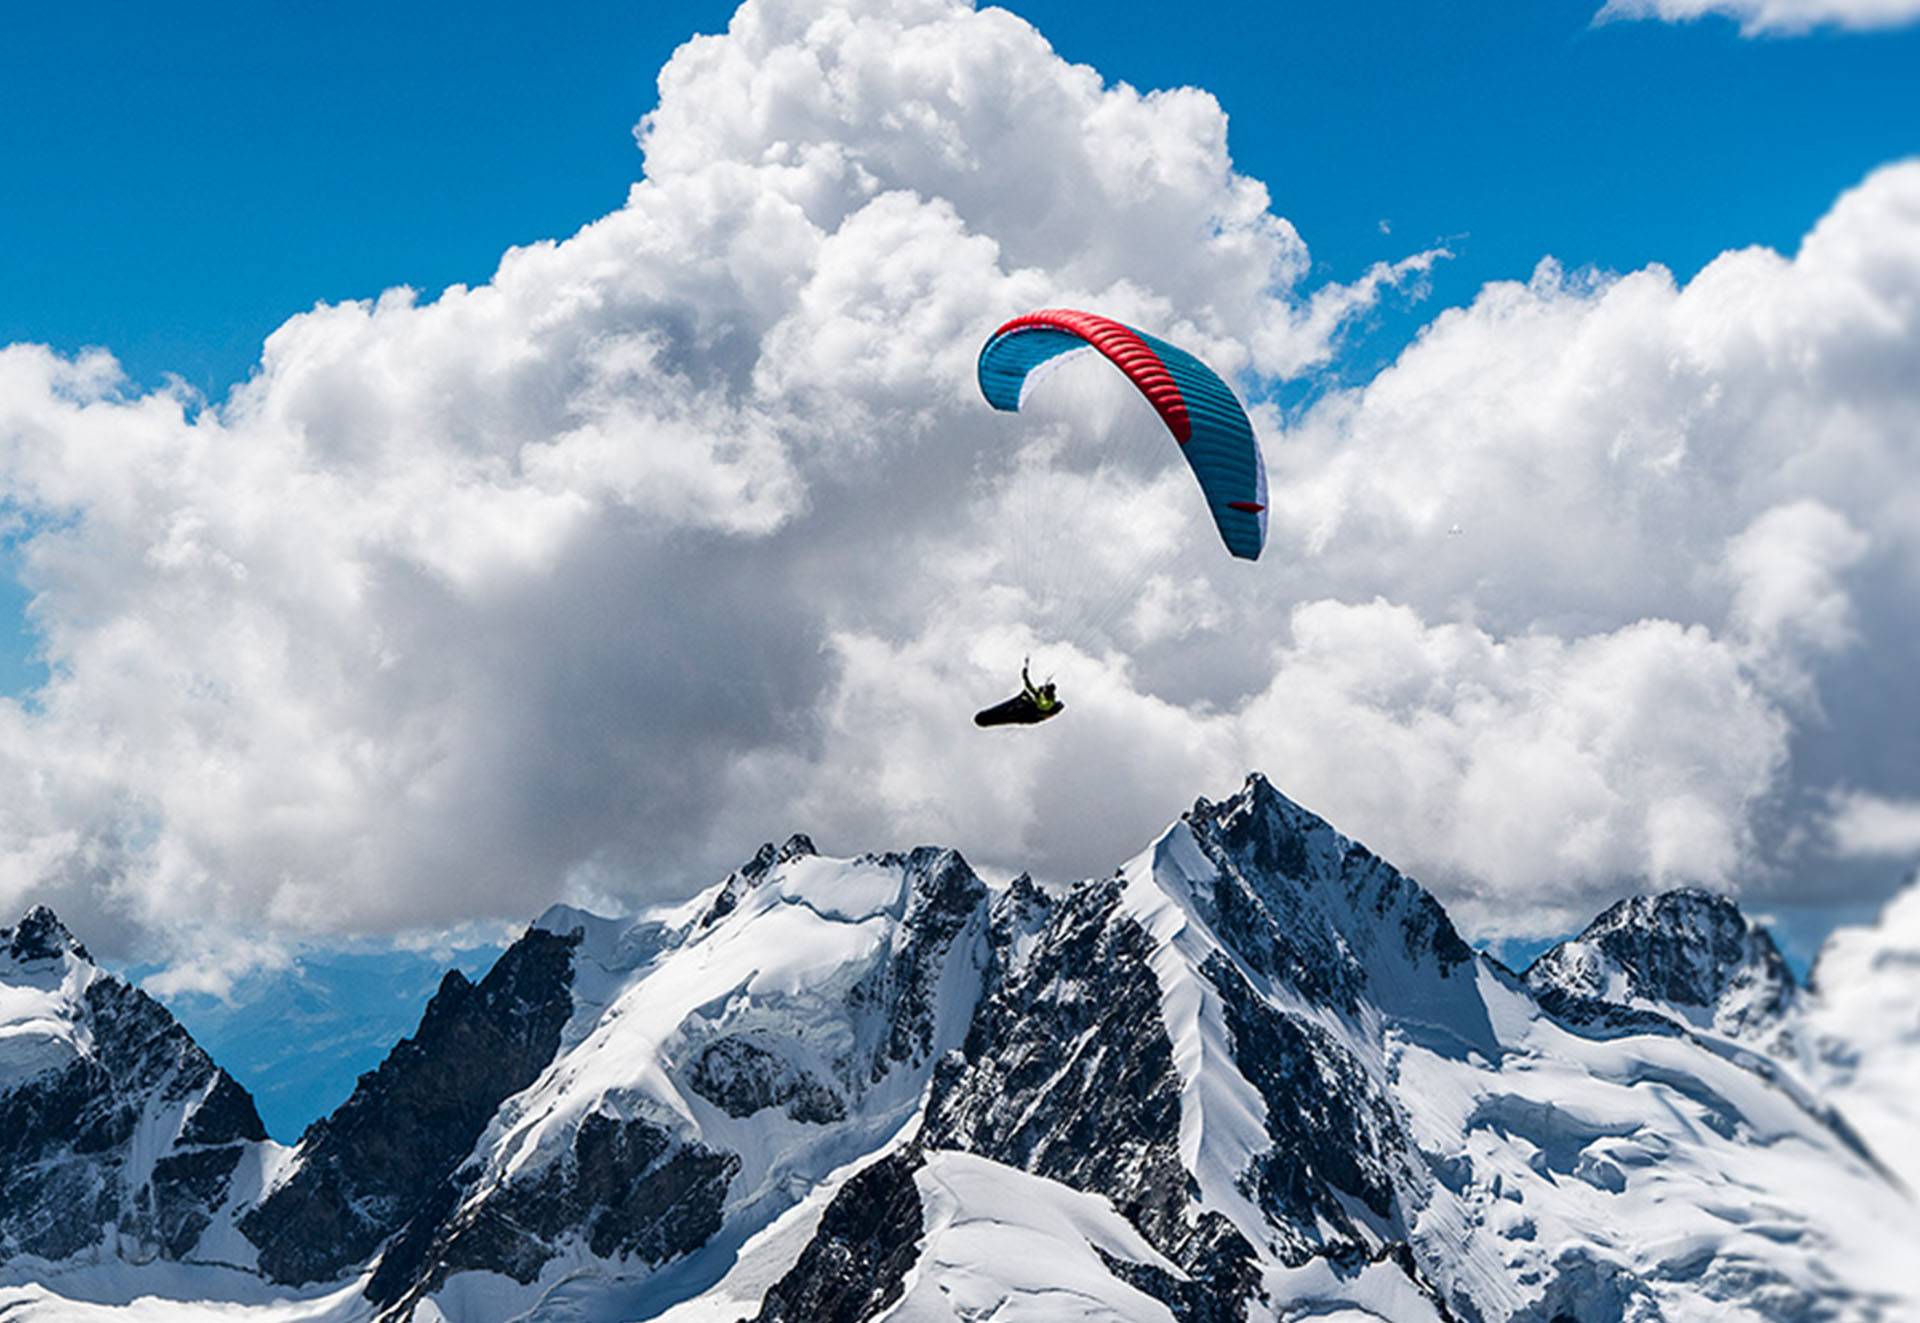 _0011_infinity-paragliding-flying-in-high-mountains